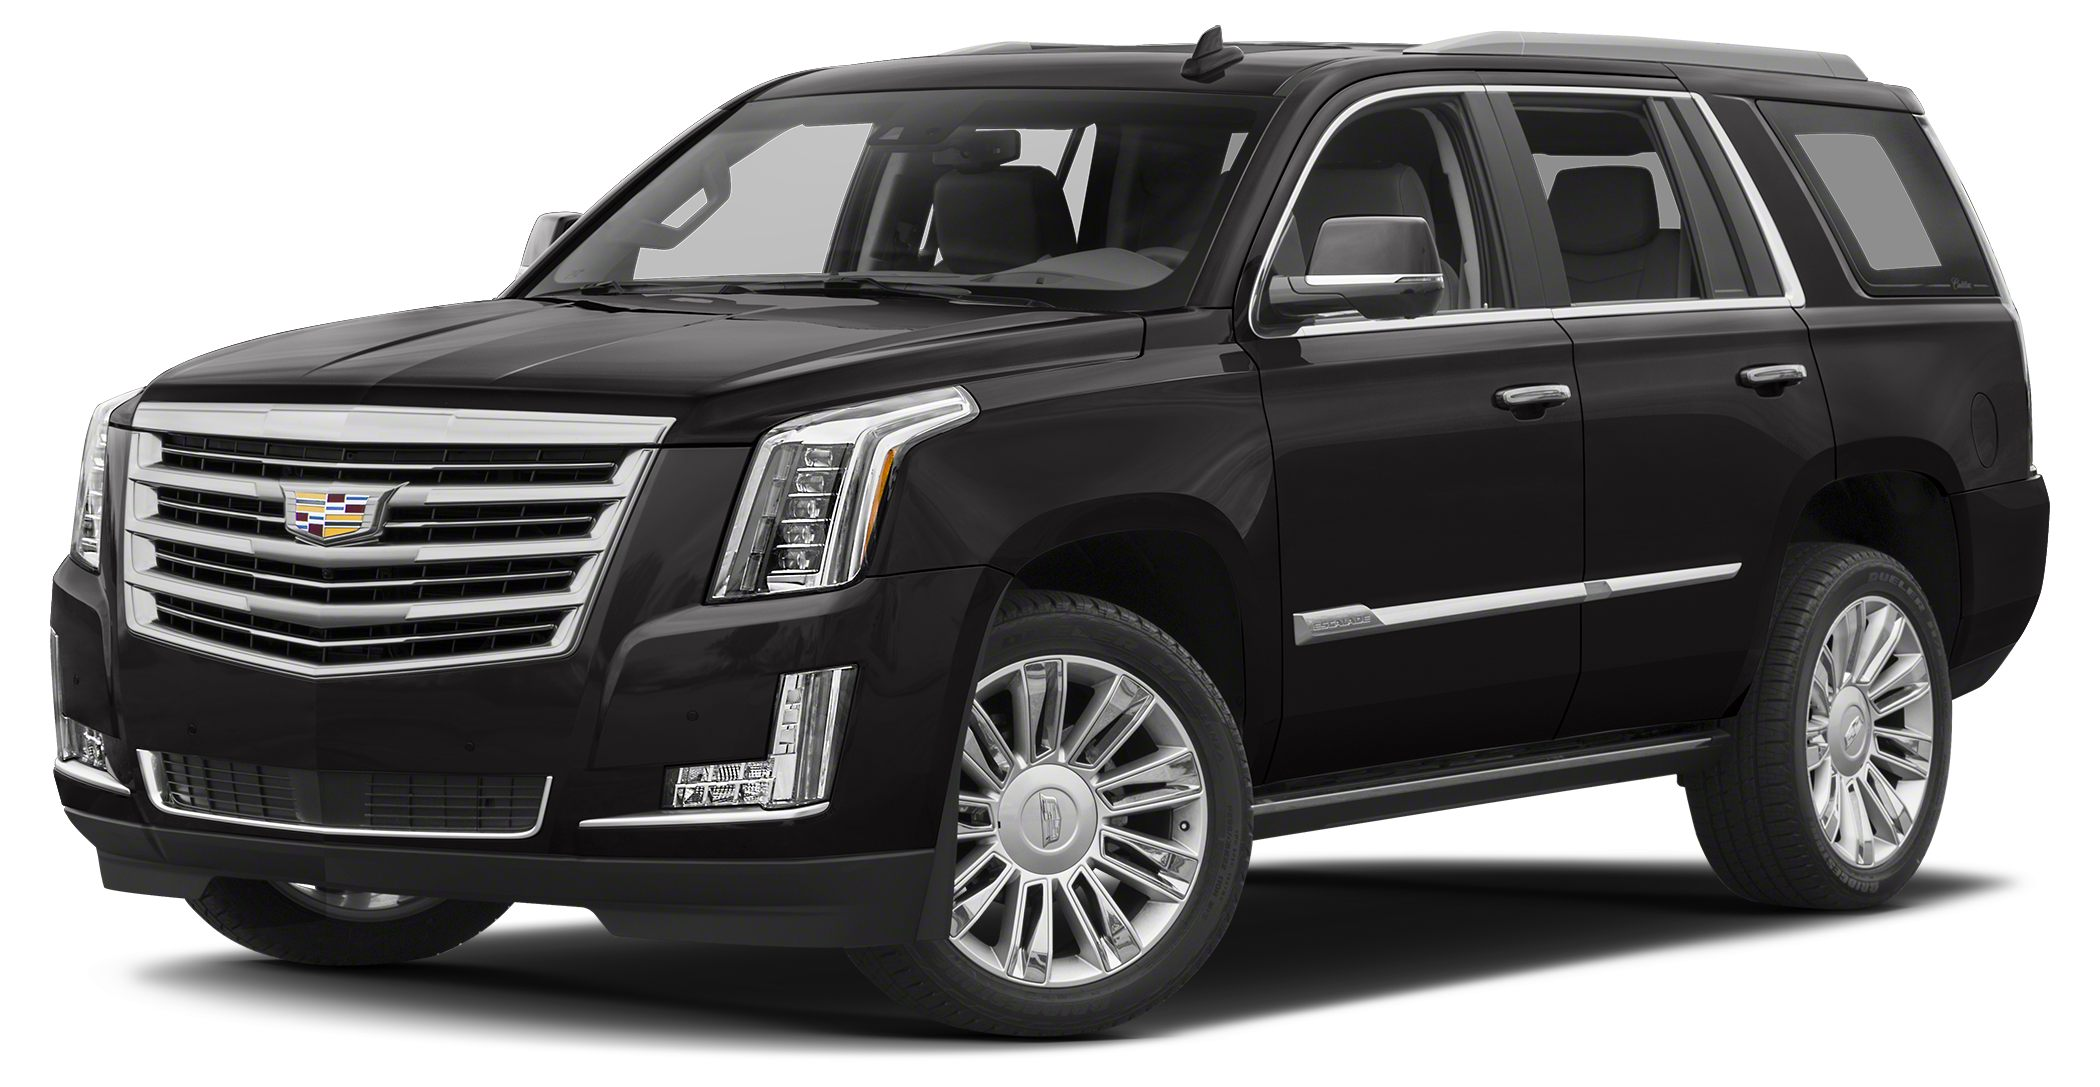 2017 Cadillac Escalade Platinum The well-recognized Escalade has been among the Kings of the SUV f